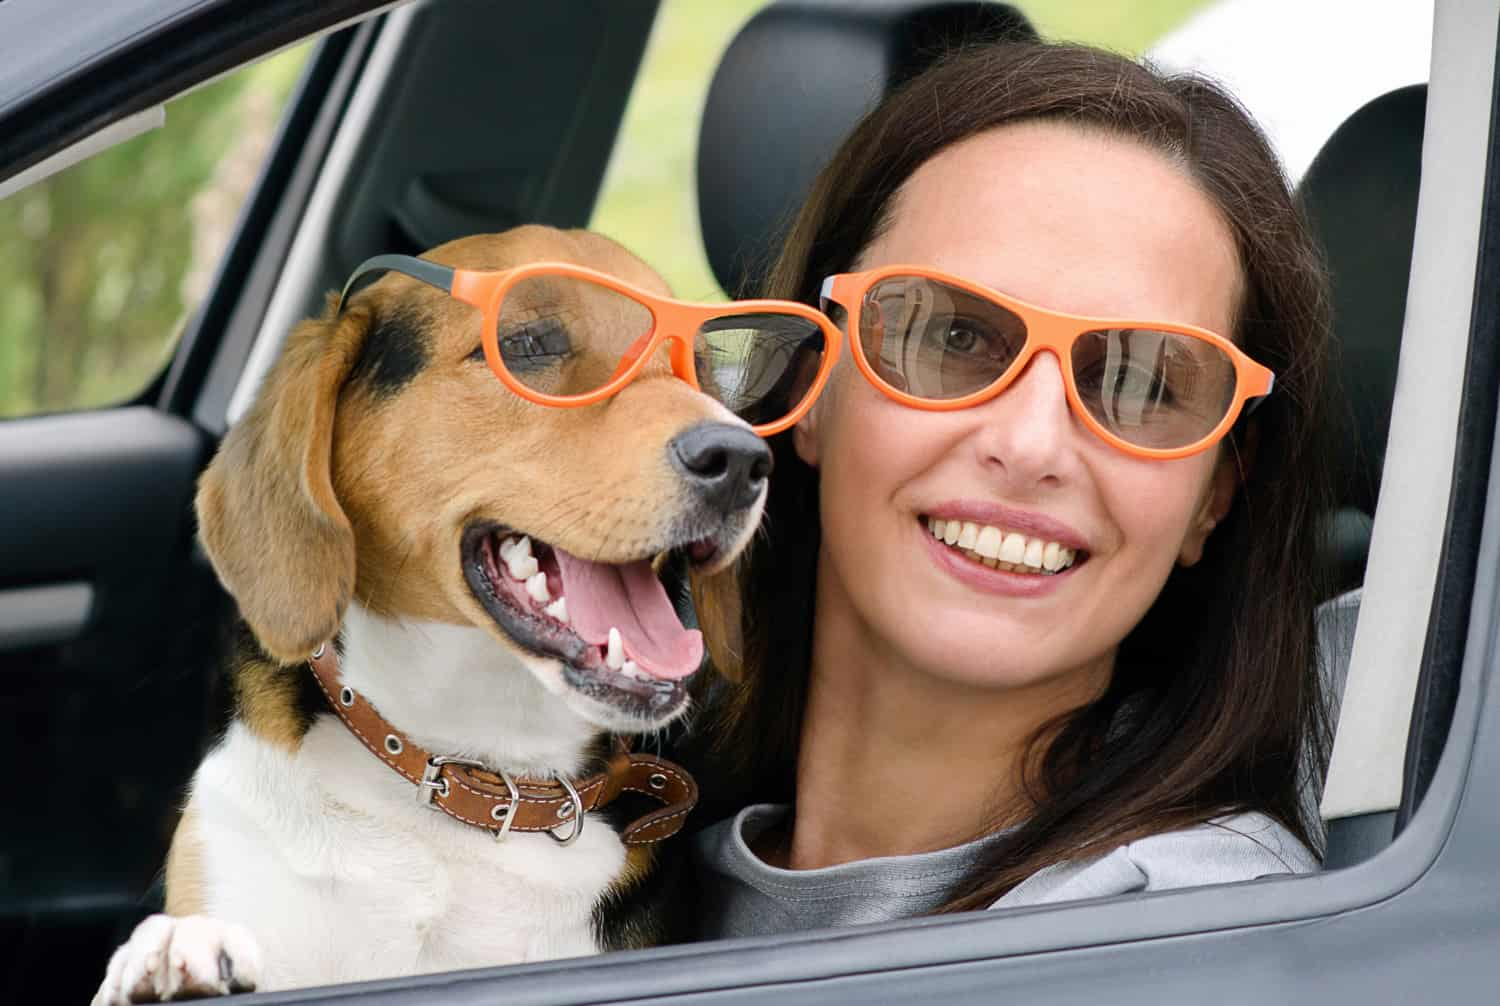 Smiling Woman and beagle dog in car at a pet friendly movie theater wearing matching sunglasses.